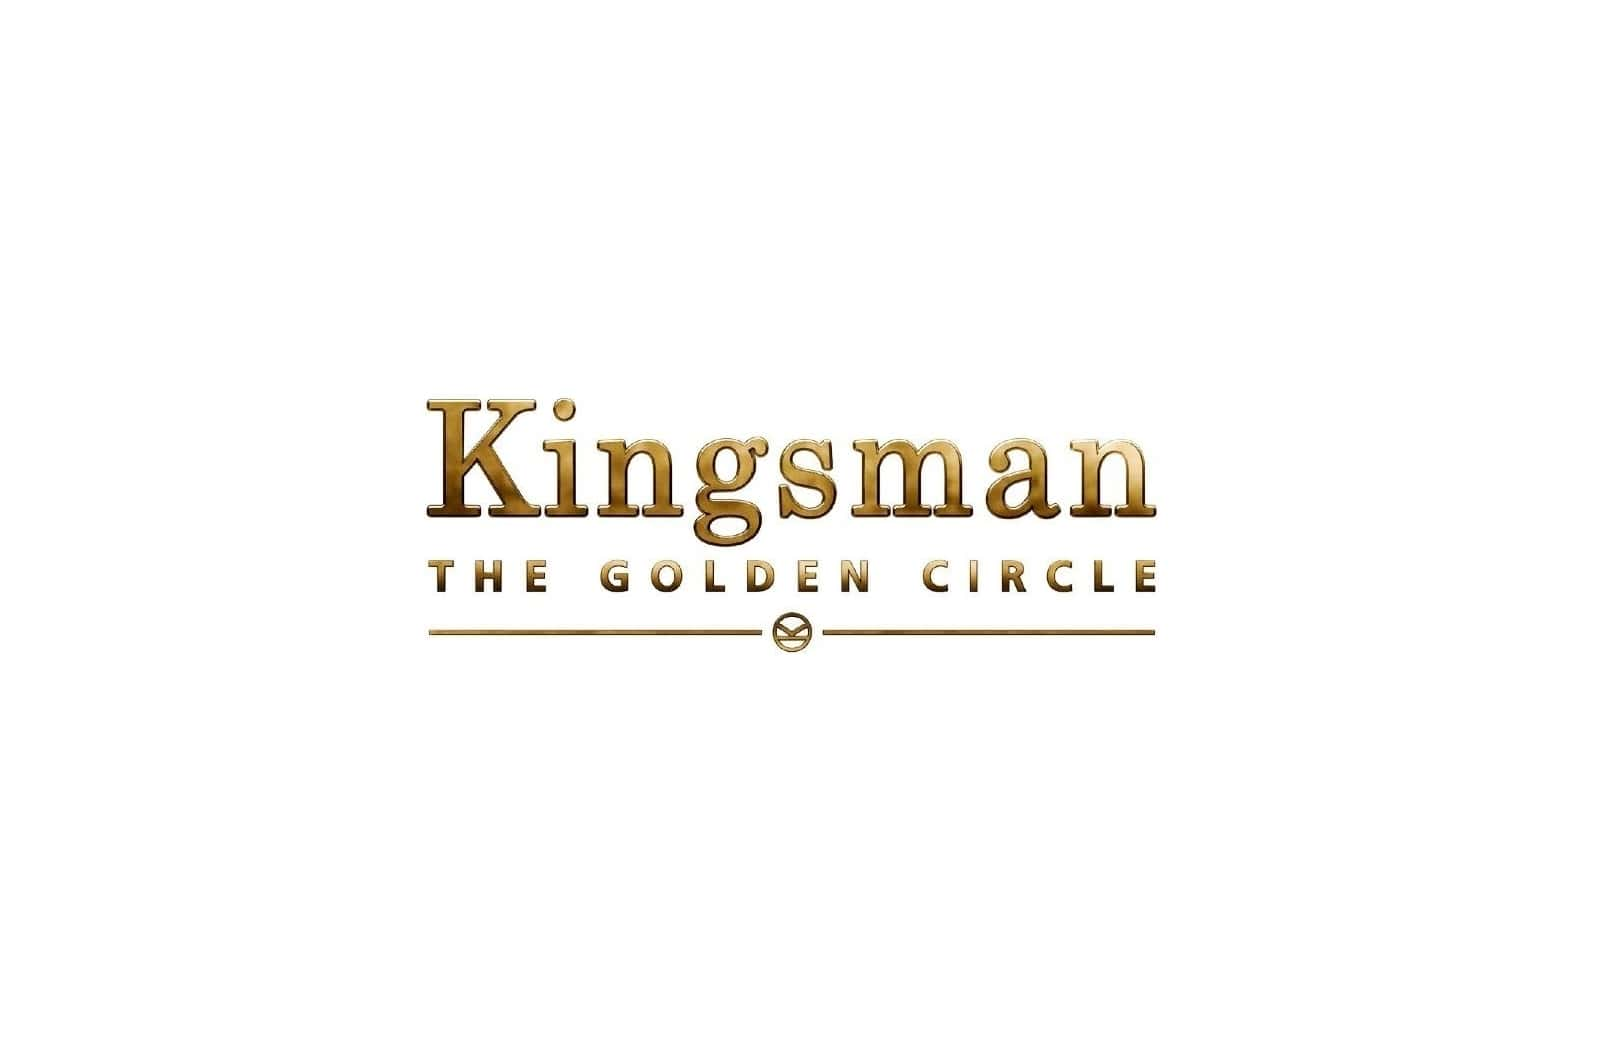 Kingsman: The Golden Circle Background